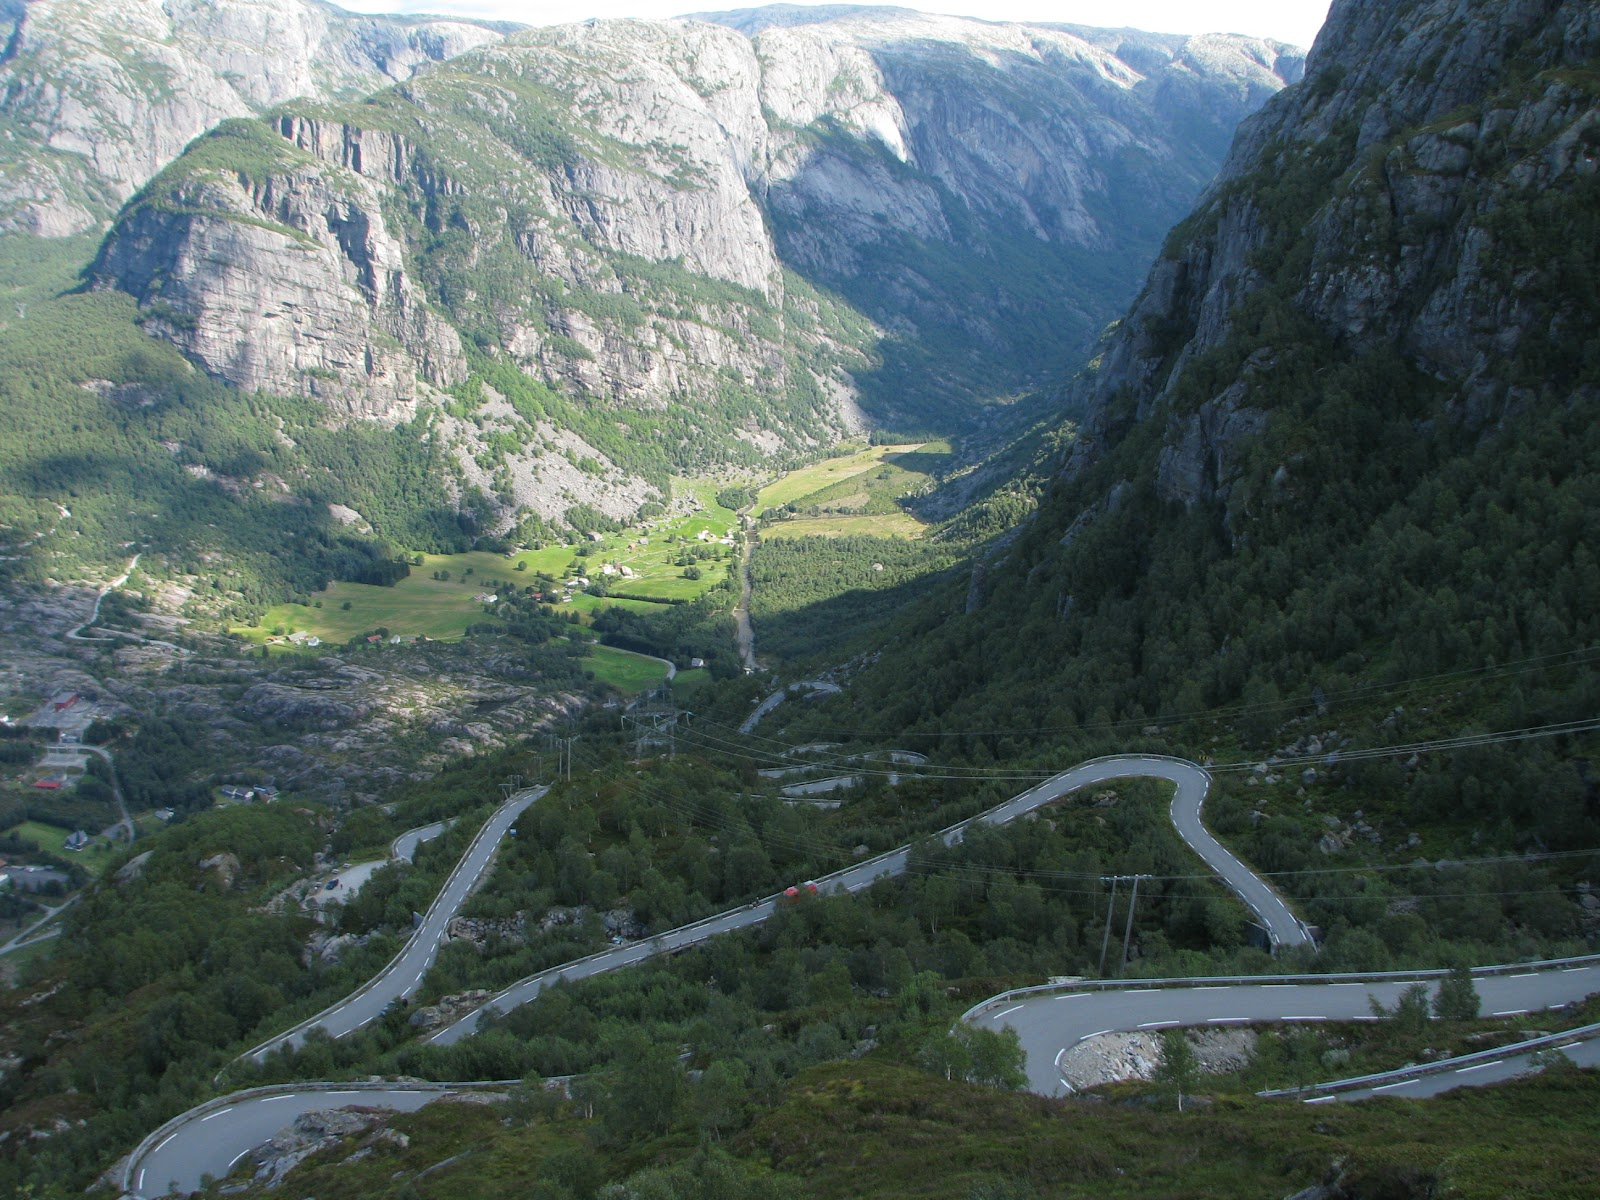 File:The road up from Lysebotn.jpg - Wikimedia Commons